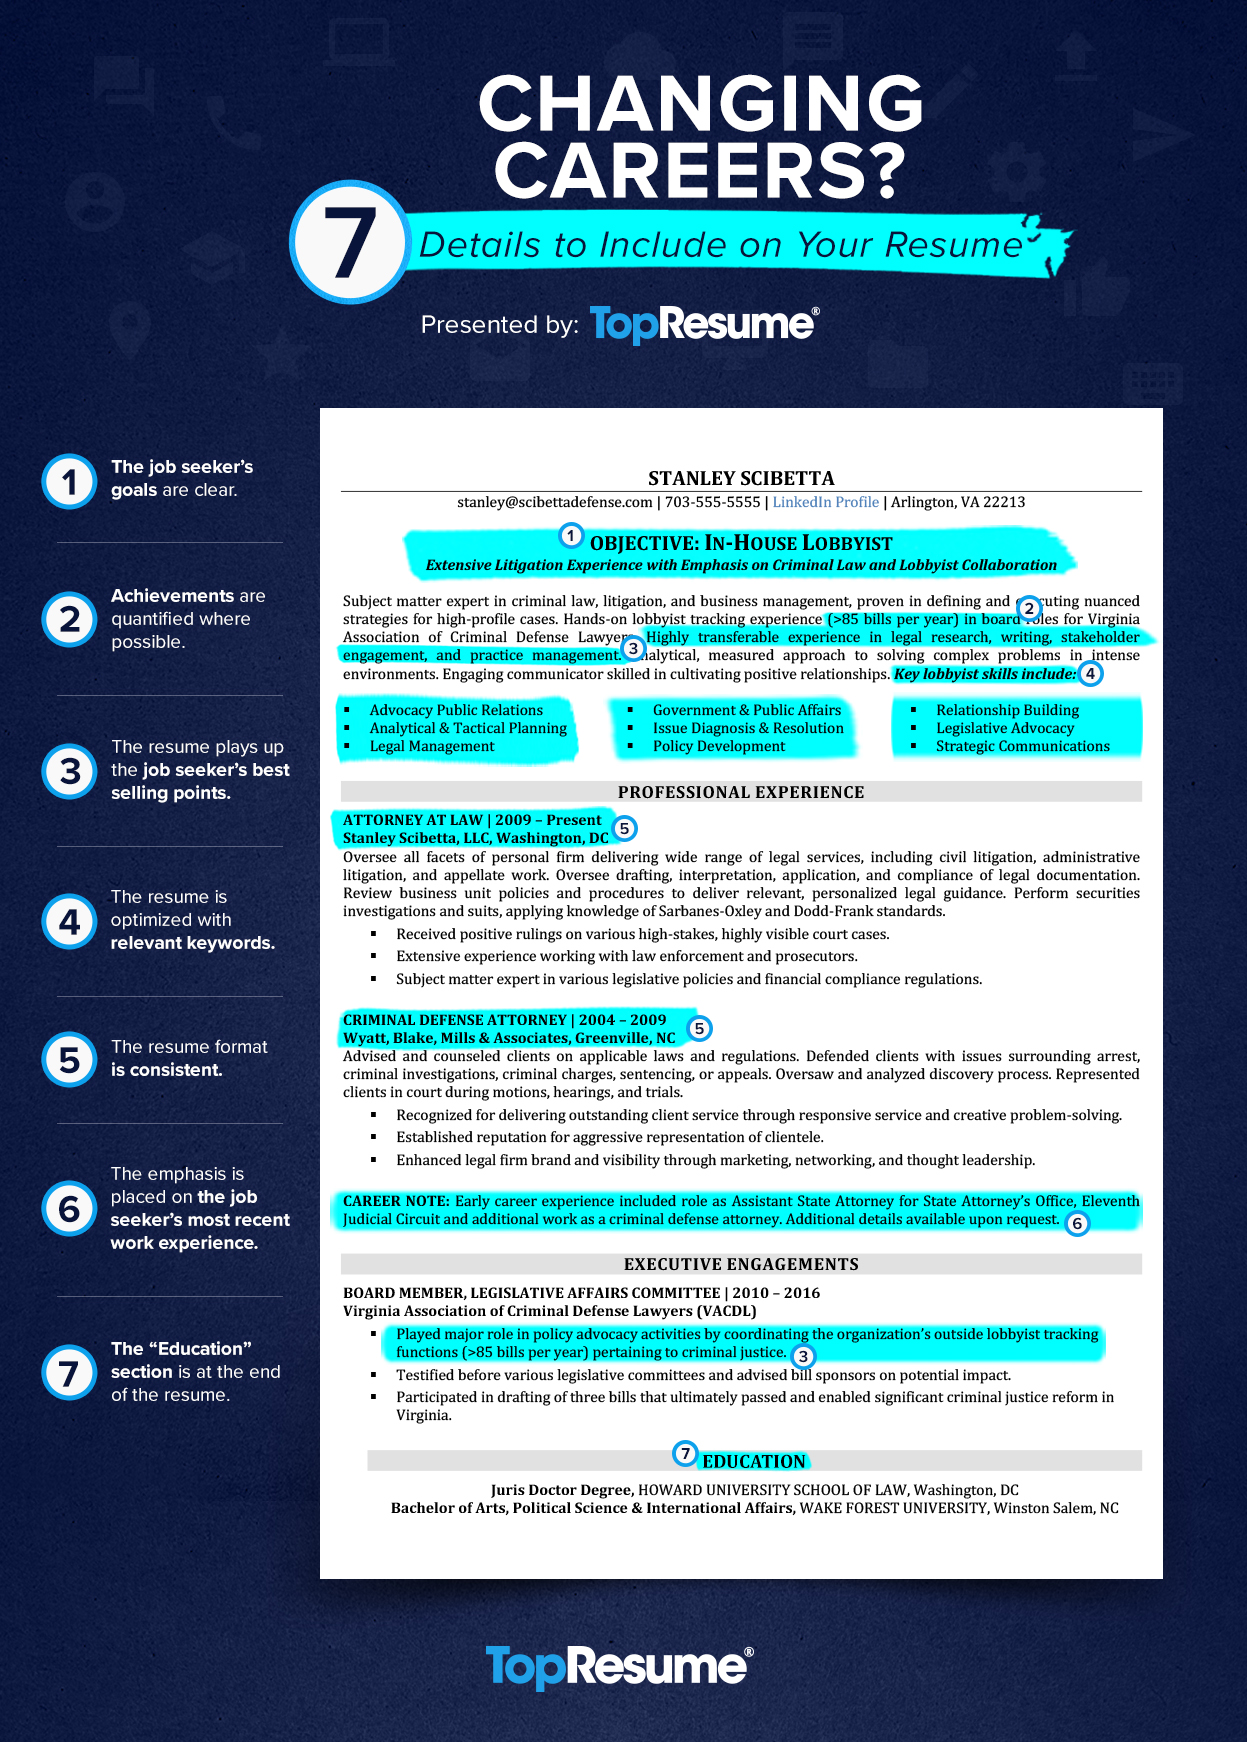 changing careers details to include on your resume topresume objective transition career Resume Resume Objective Transition Career